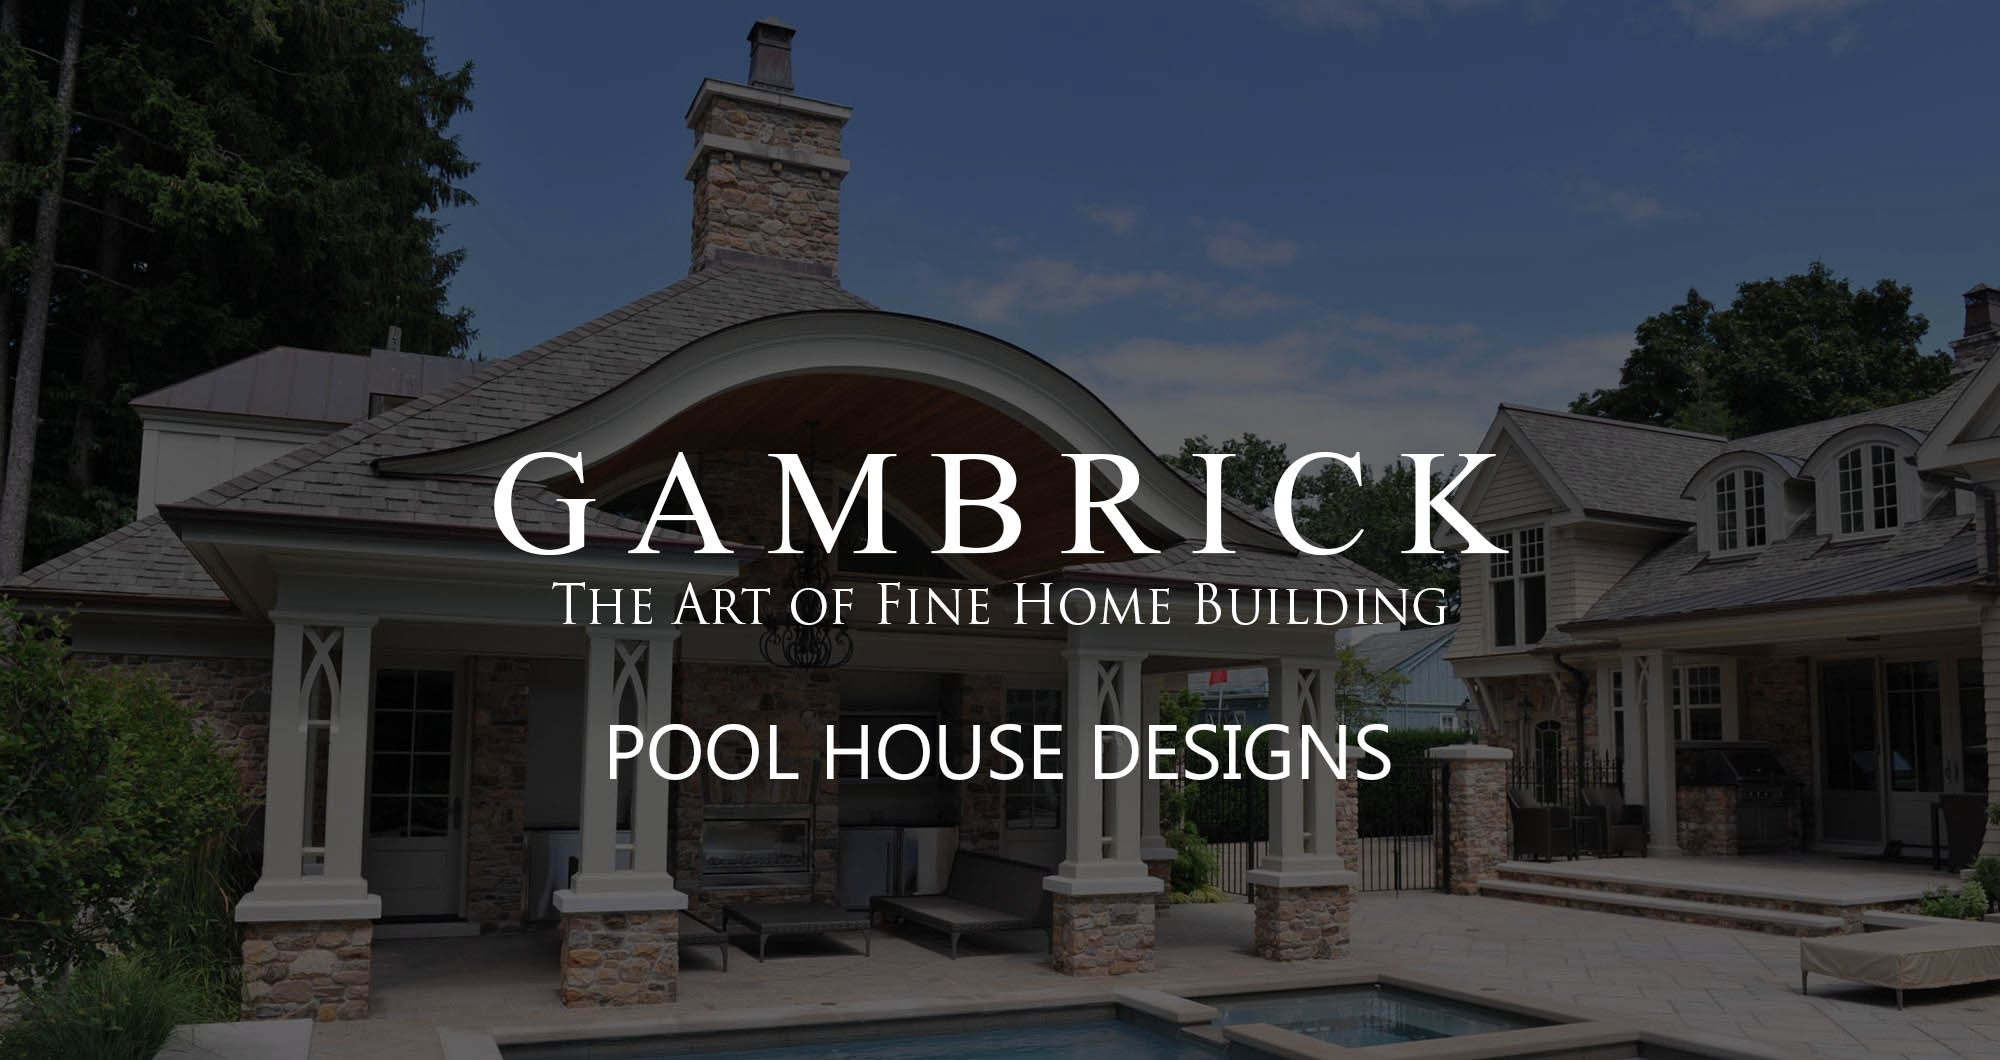 pool house designs to designs banner pic - Gambrick